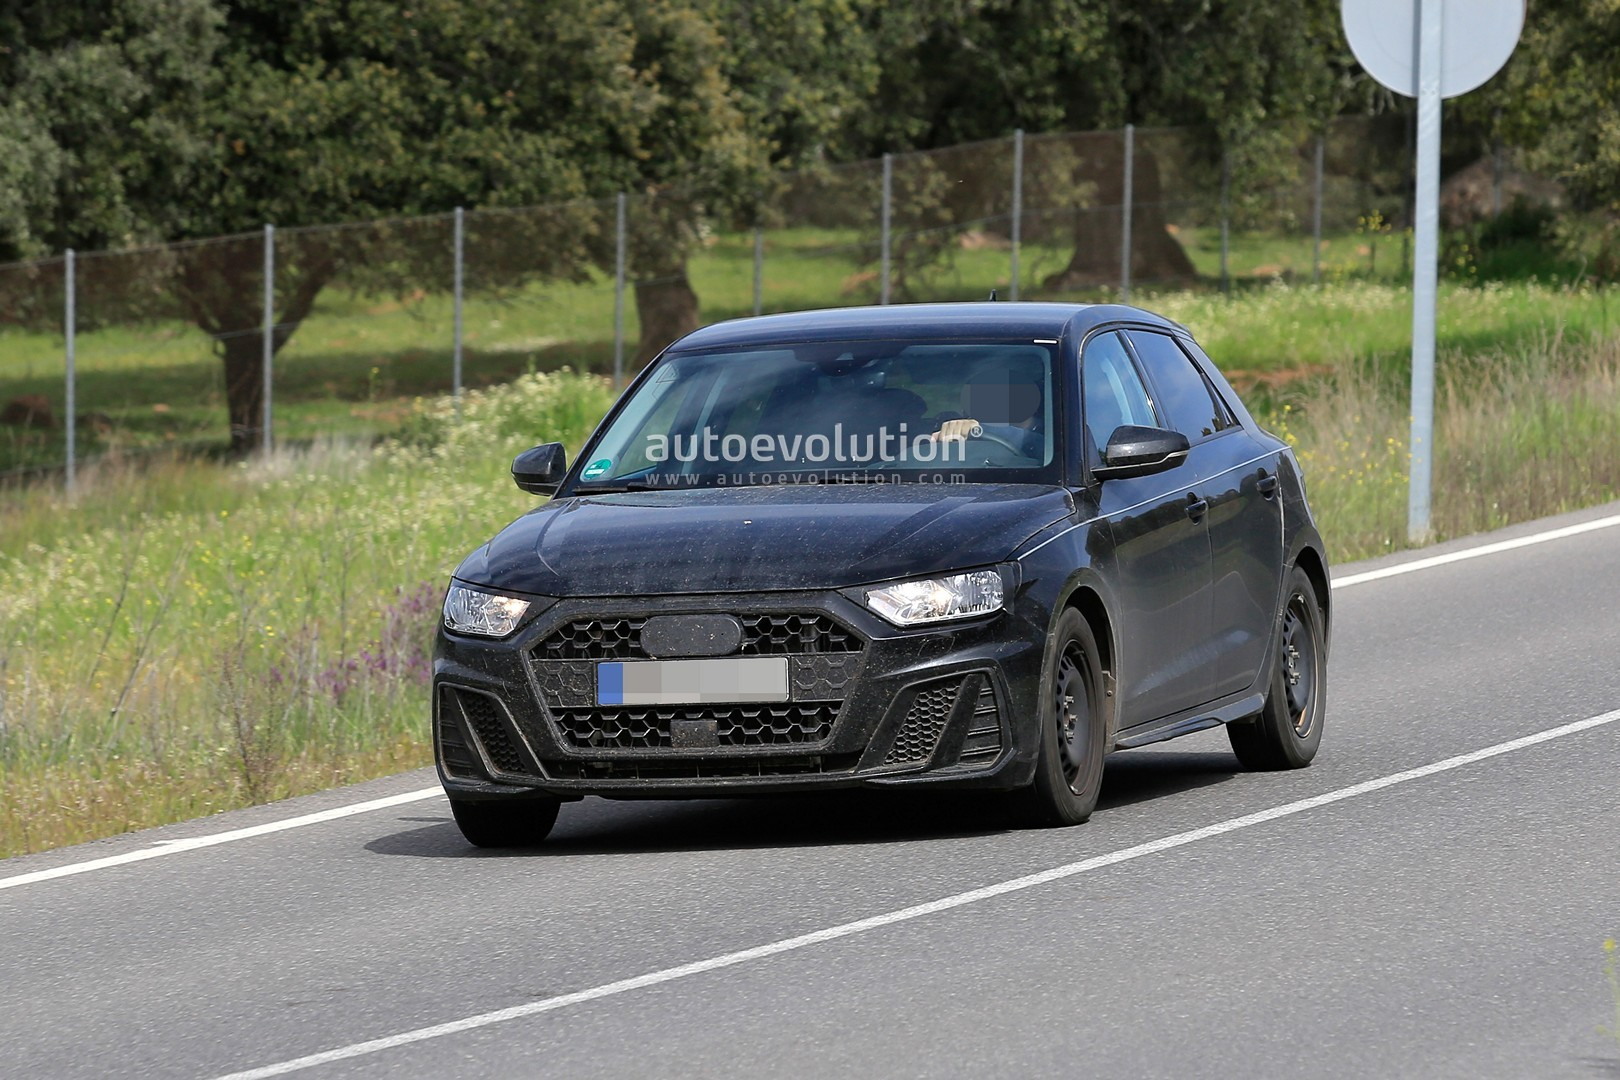 2019 audi a1 sportback spied completely undisguised autoevolution. Black Bedroom Furniture Sets. Home Design Ideas